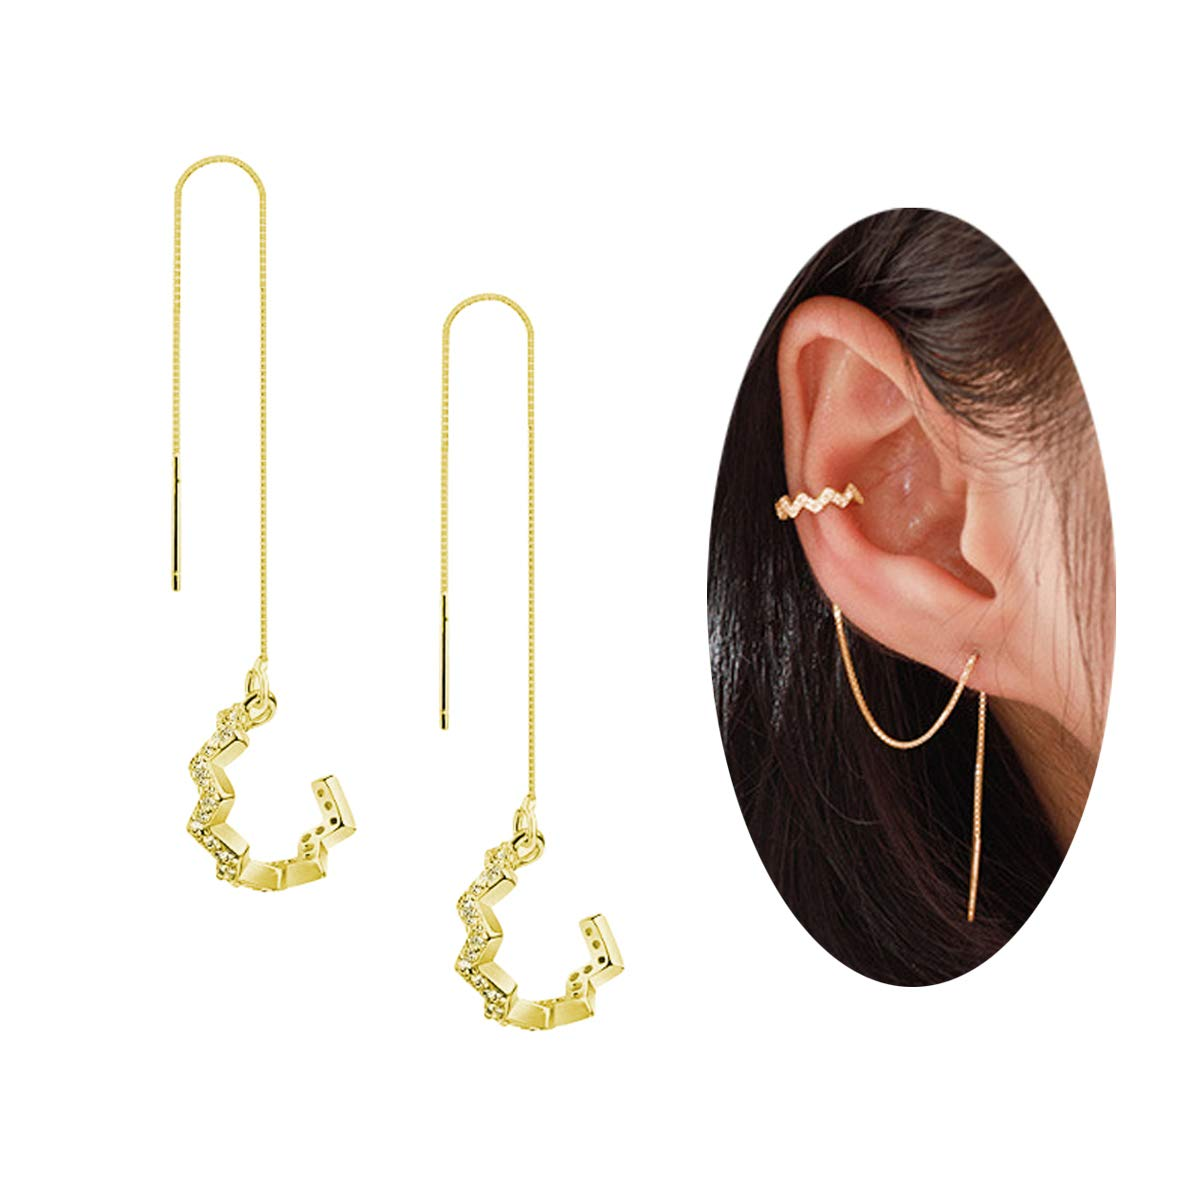 FarryDream 925 Sterling Silver New Arrival Wave Cuff Earrings Wrap Tassel Earrings for Women Threader Earrings Perfect Valentine's Day Gifts (yellow-gold-plated)